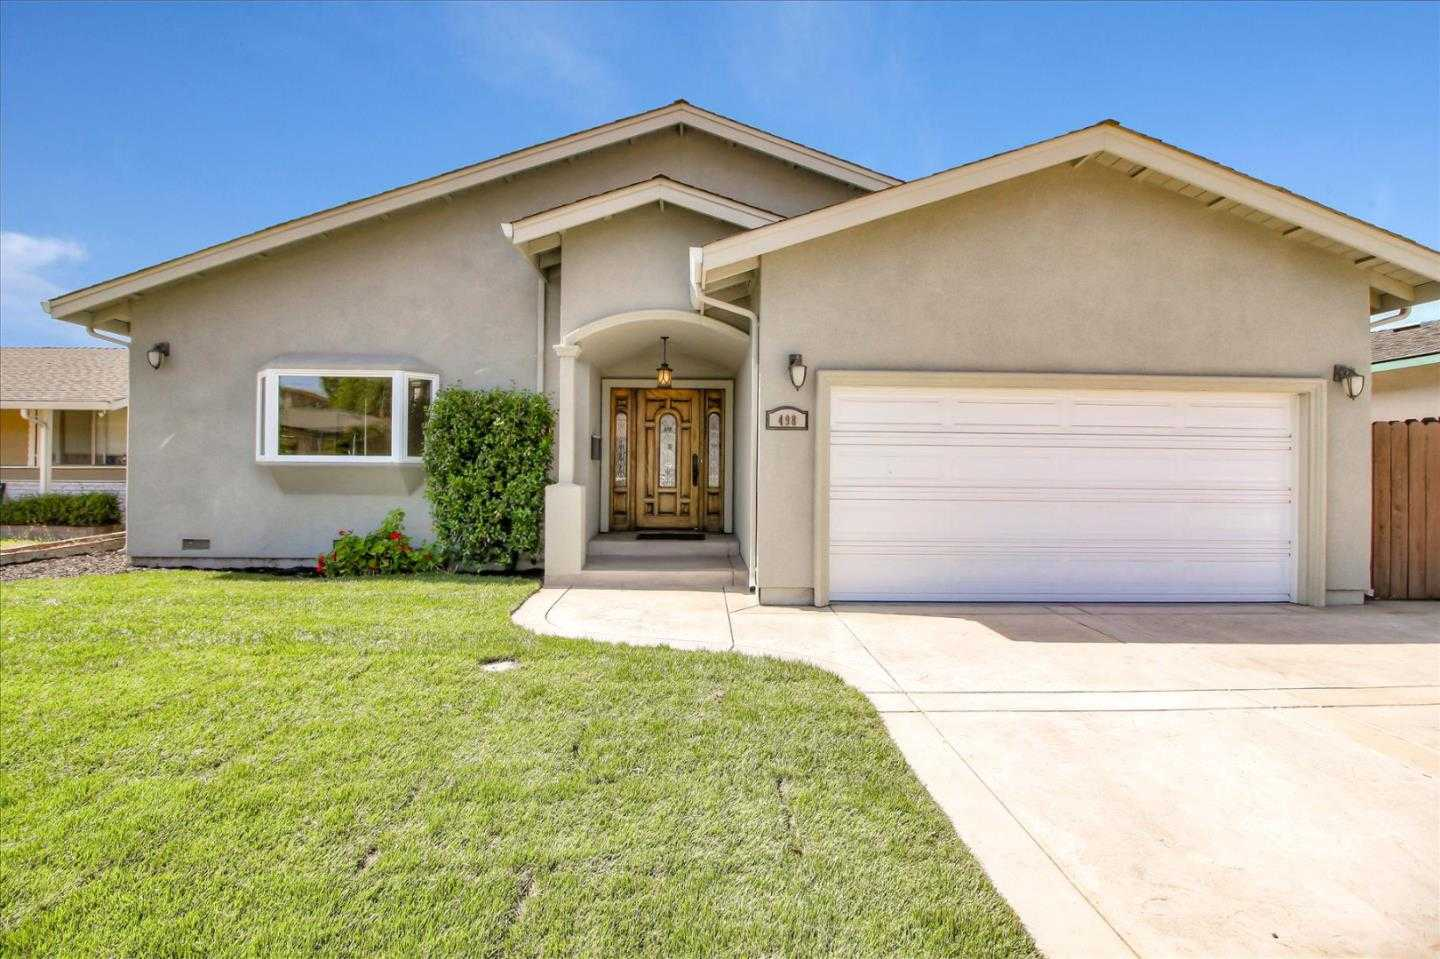 $1,100,000 - 4Br/2Ba -  for Sale in San Jose